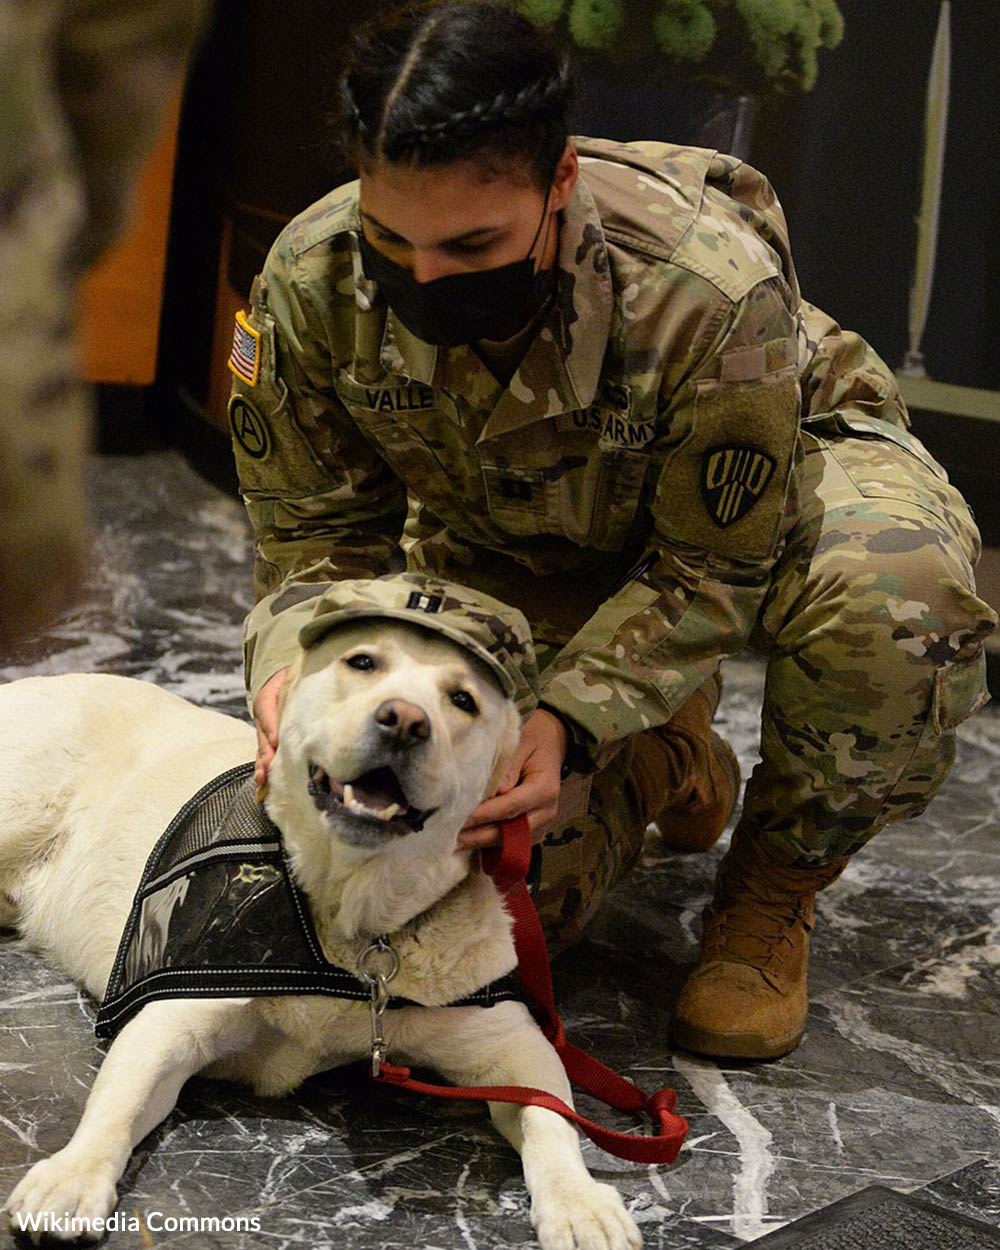 Greater Good Charities partners with Pets for Vets to help heal the emotional wounds of military veterans by pairing each one with a shelter dog specifically matched to his or her personality.